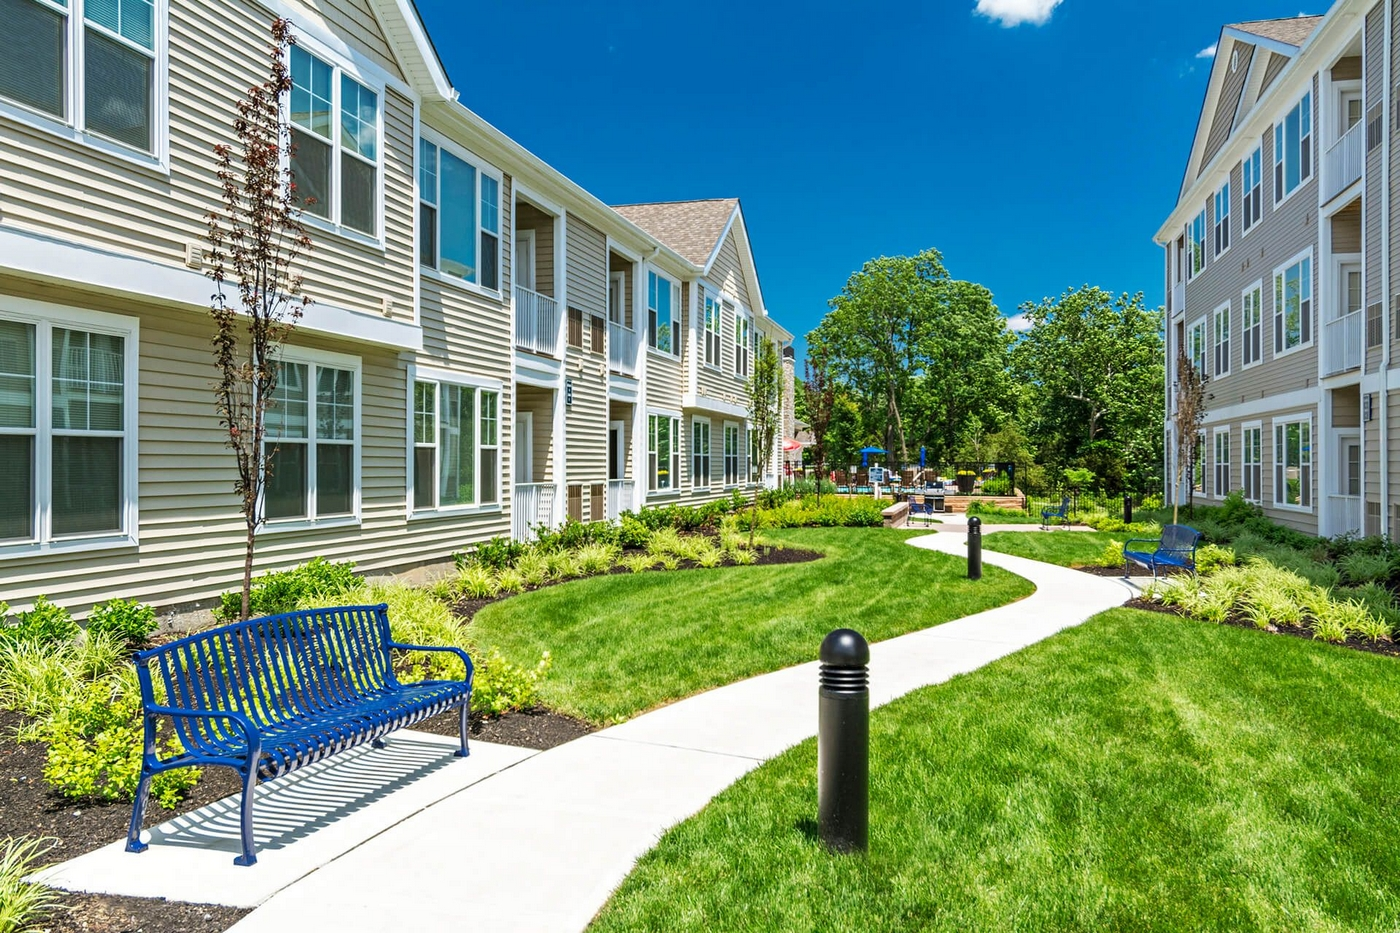 Exterior image of apartment unit with landscaped grounds walkway